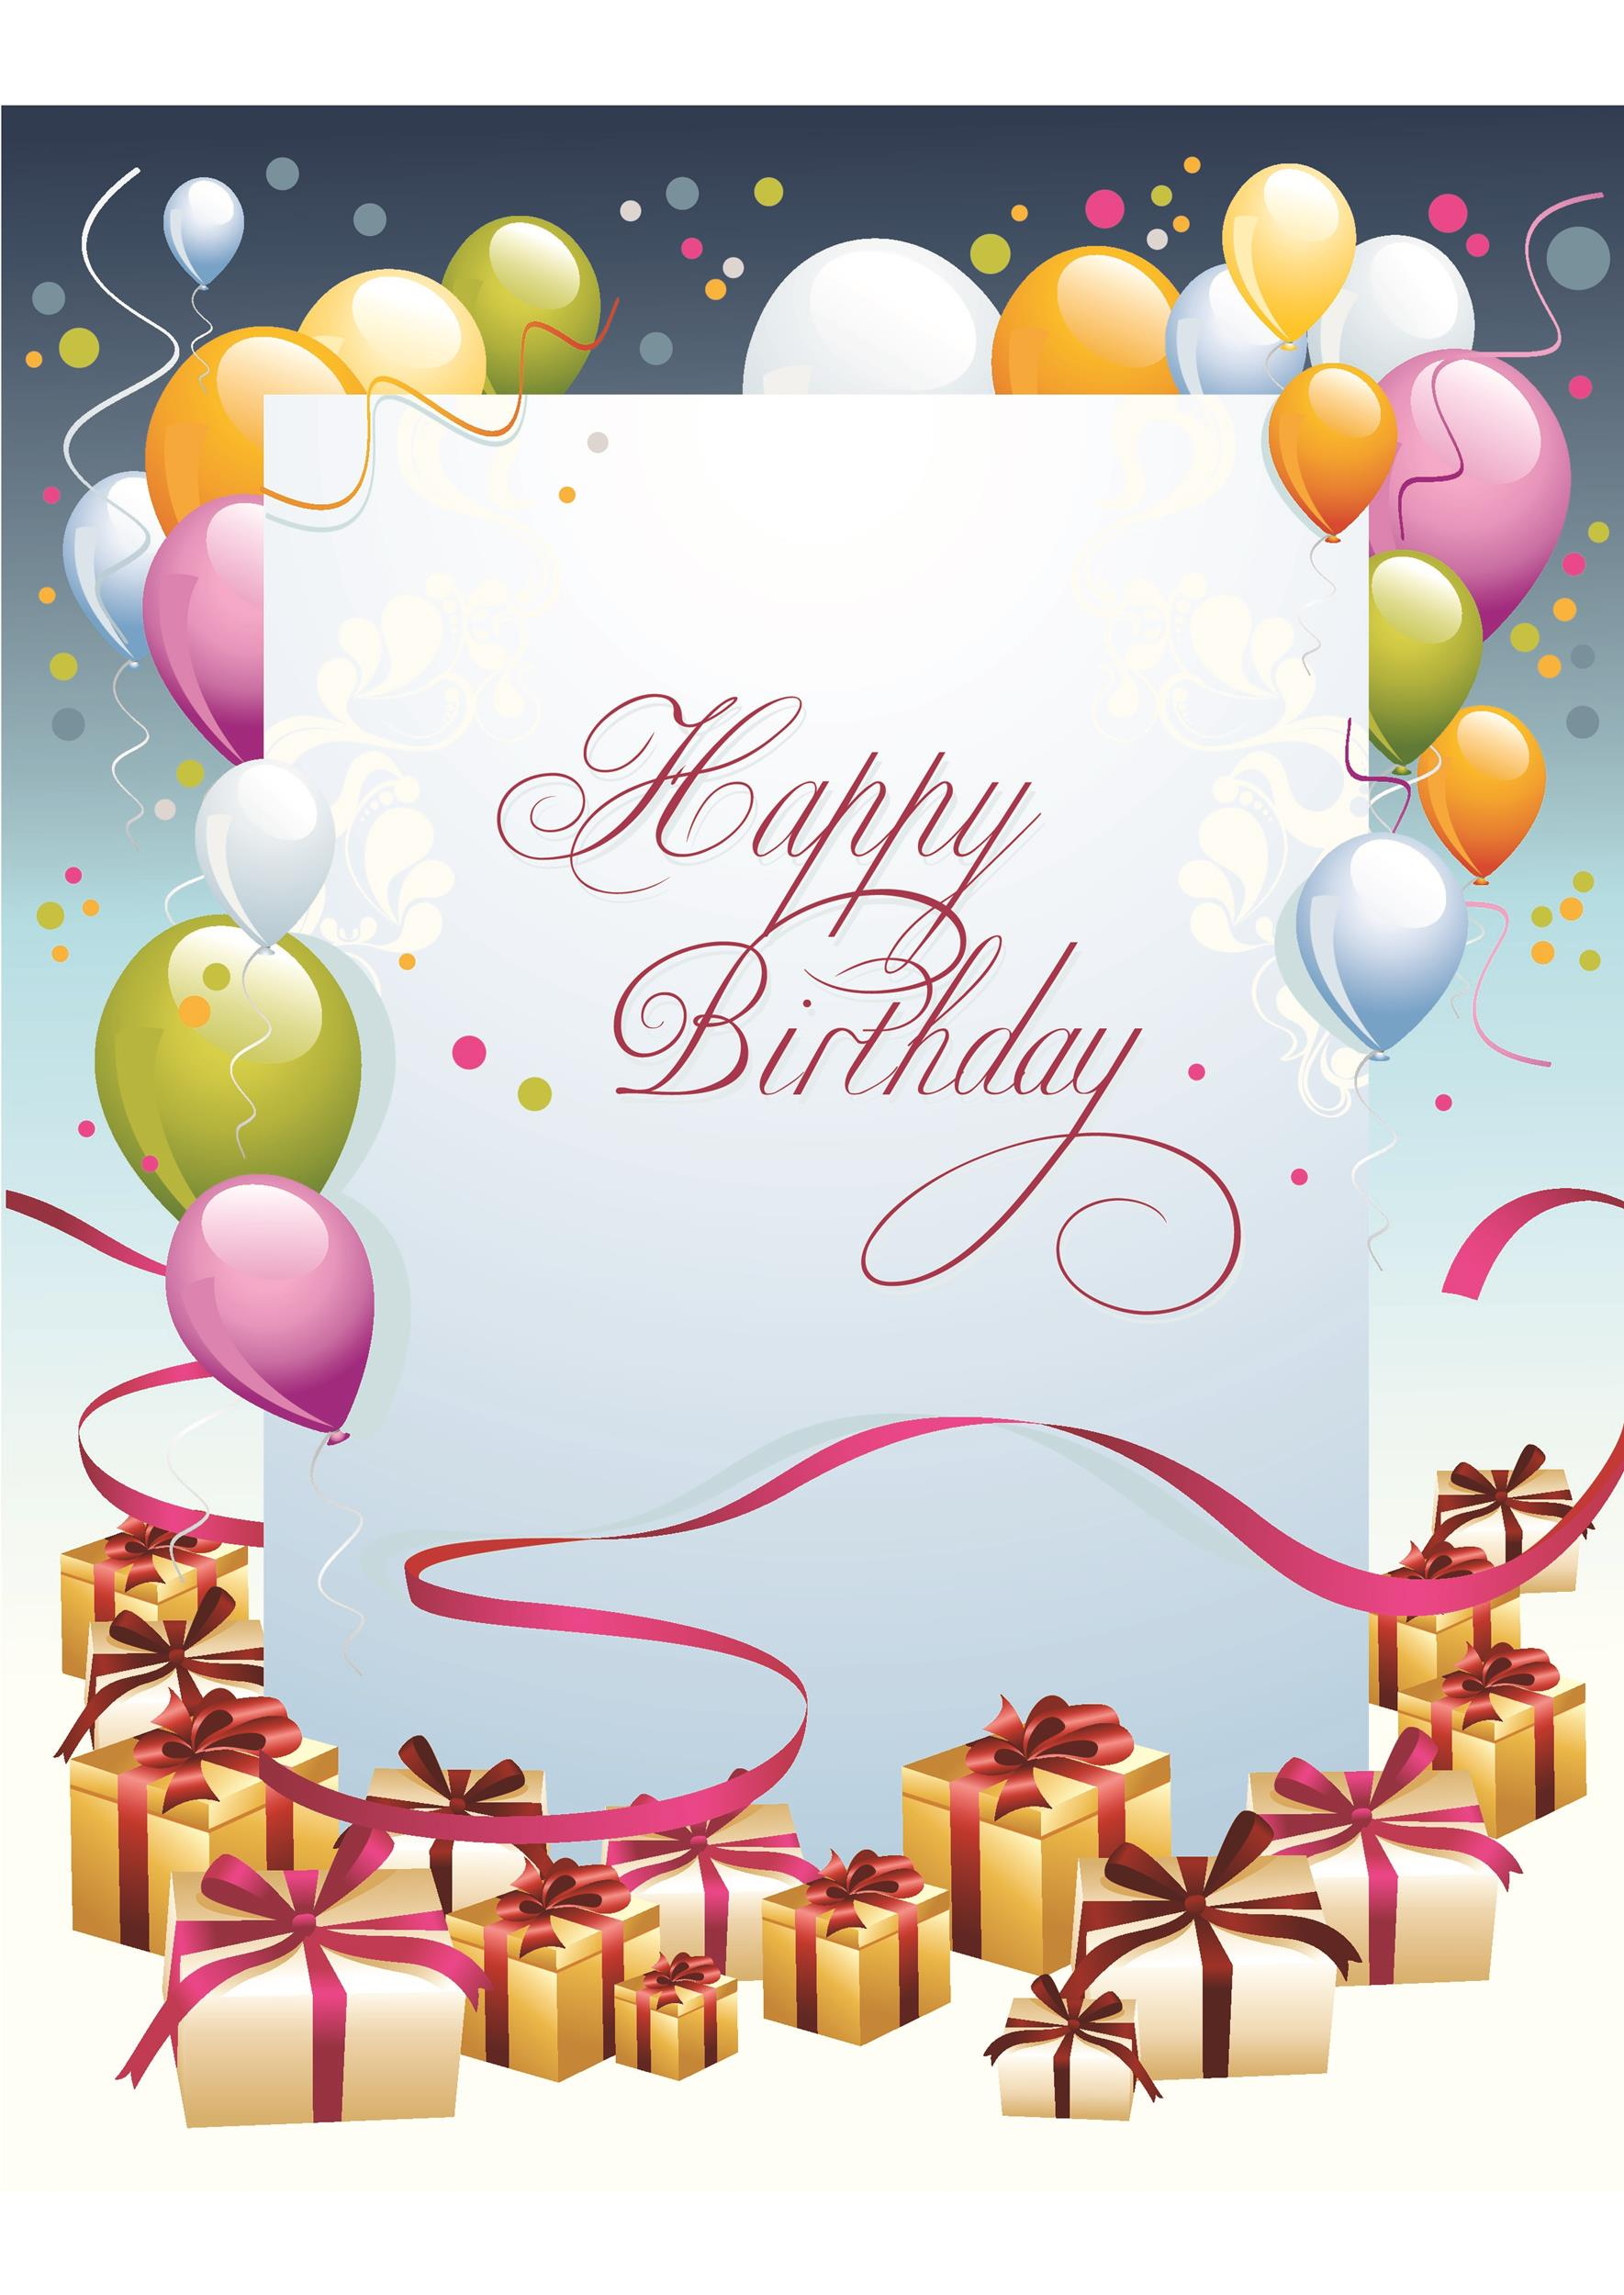 free birthday card template 02 - Free Birthday Templates